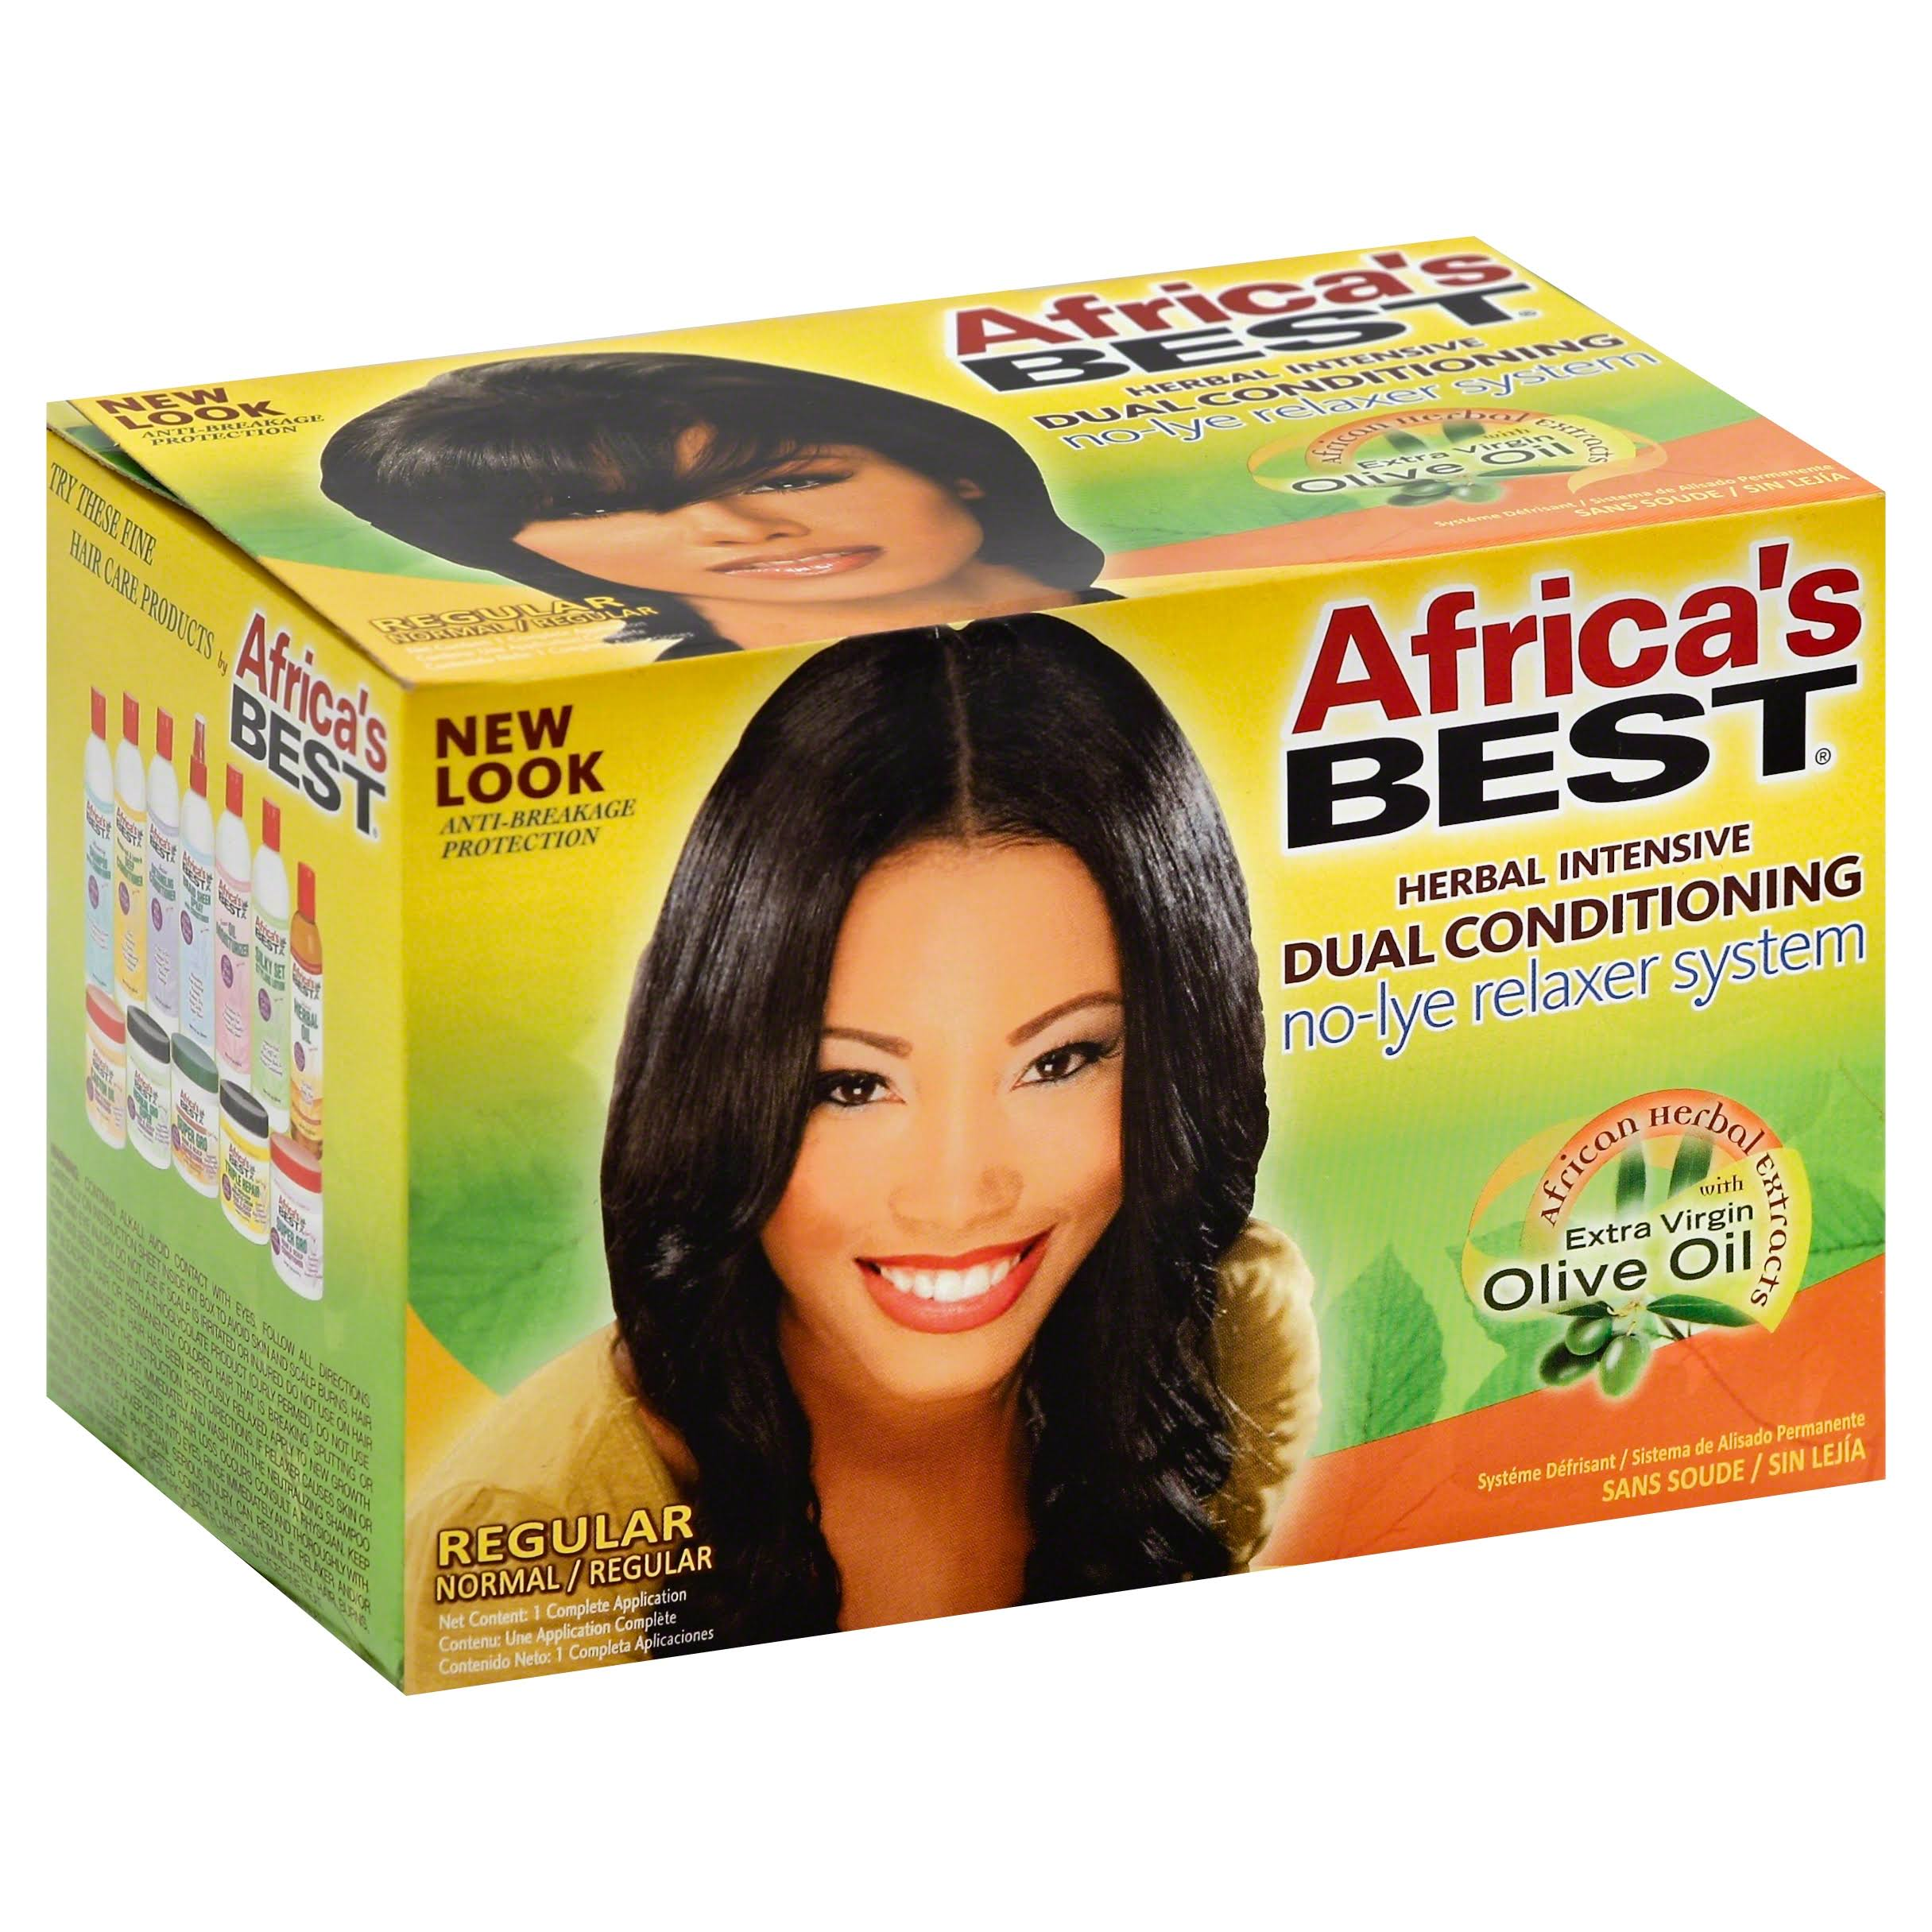 Africa's Best Conditioning Relaxer System - Regular